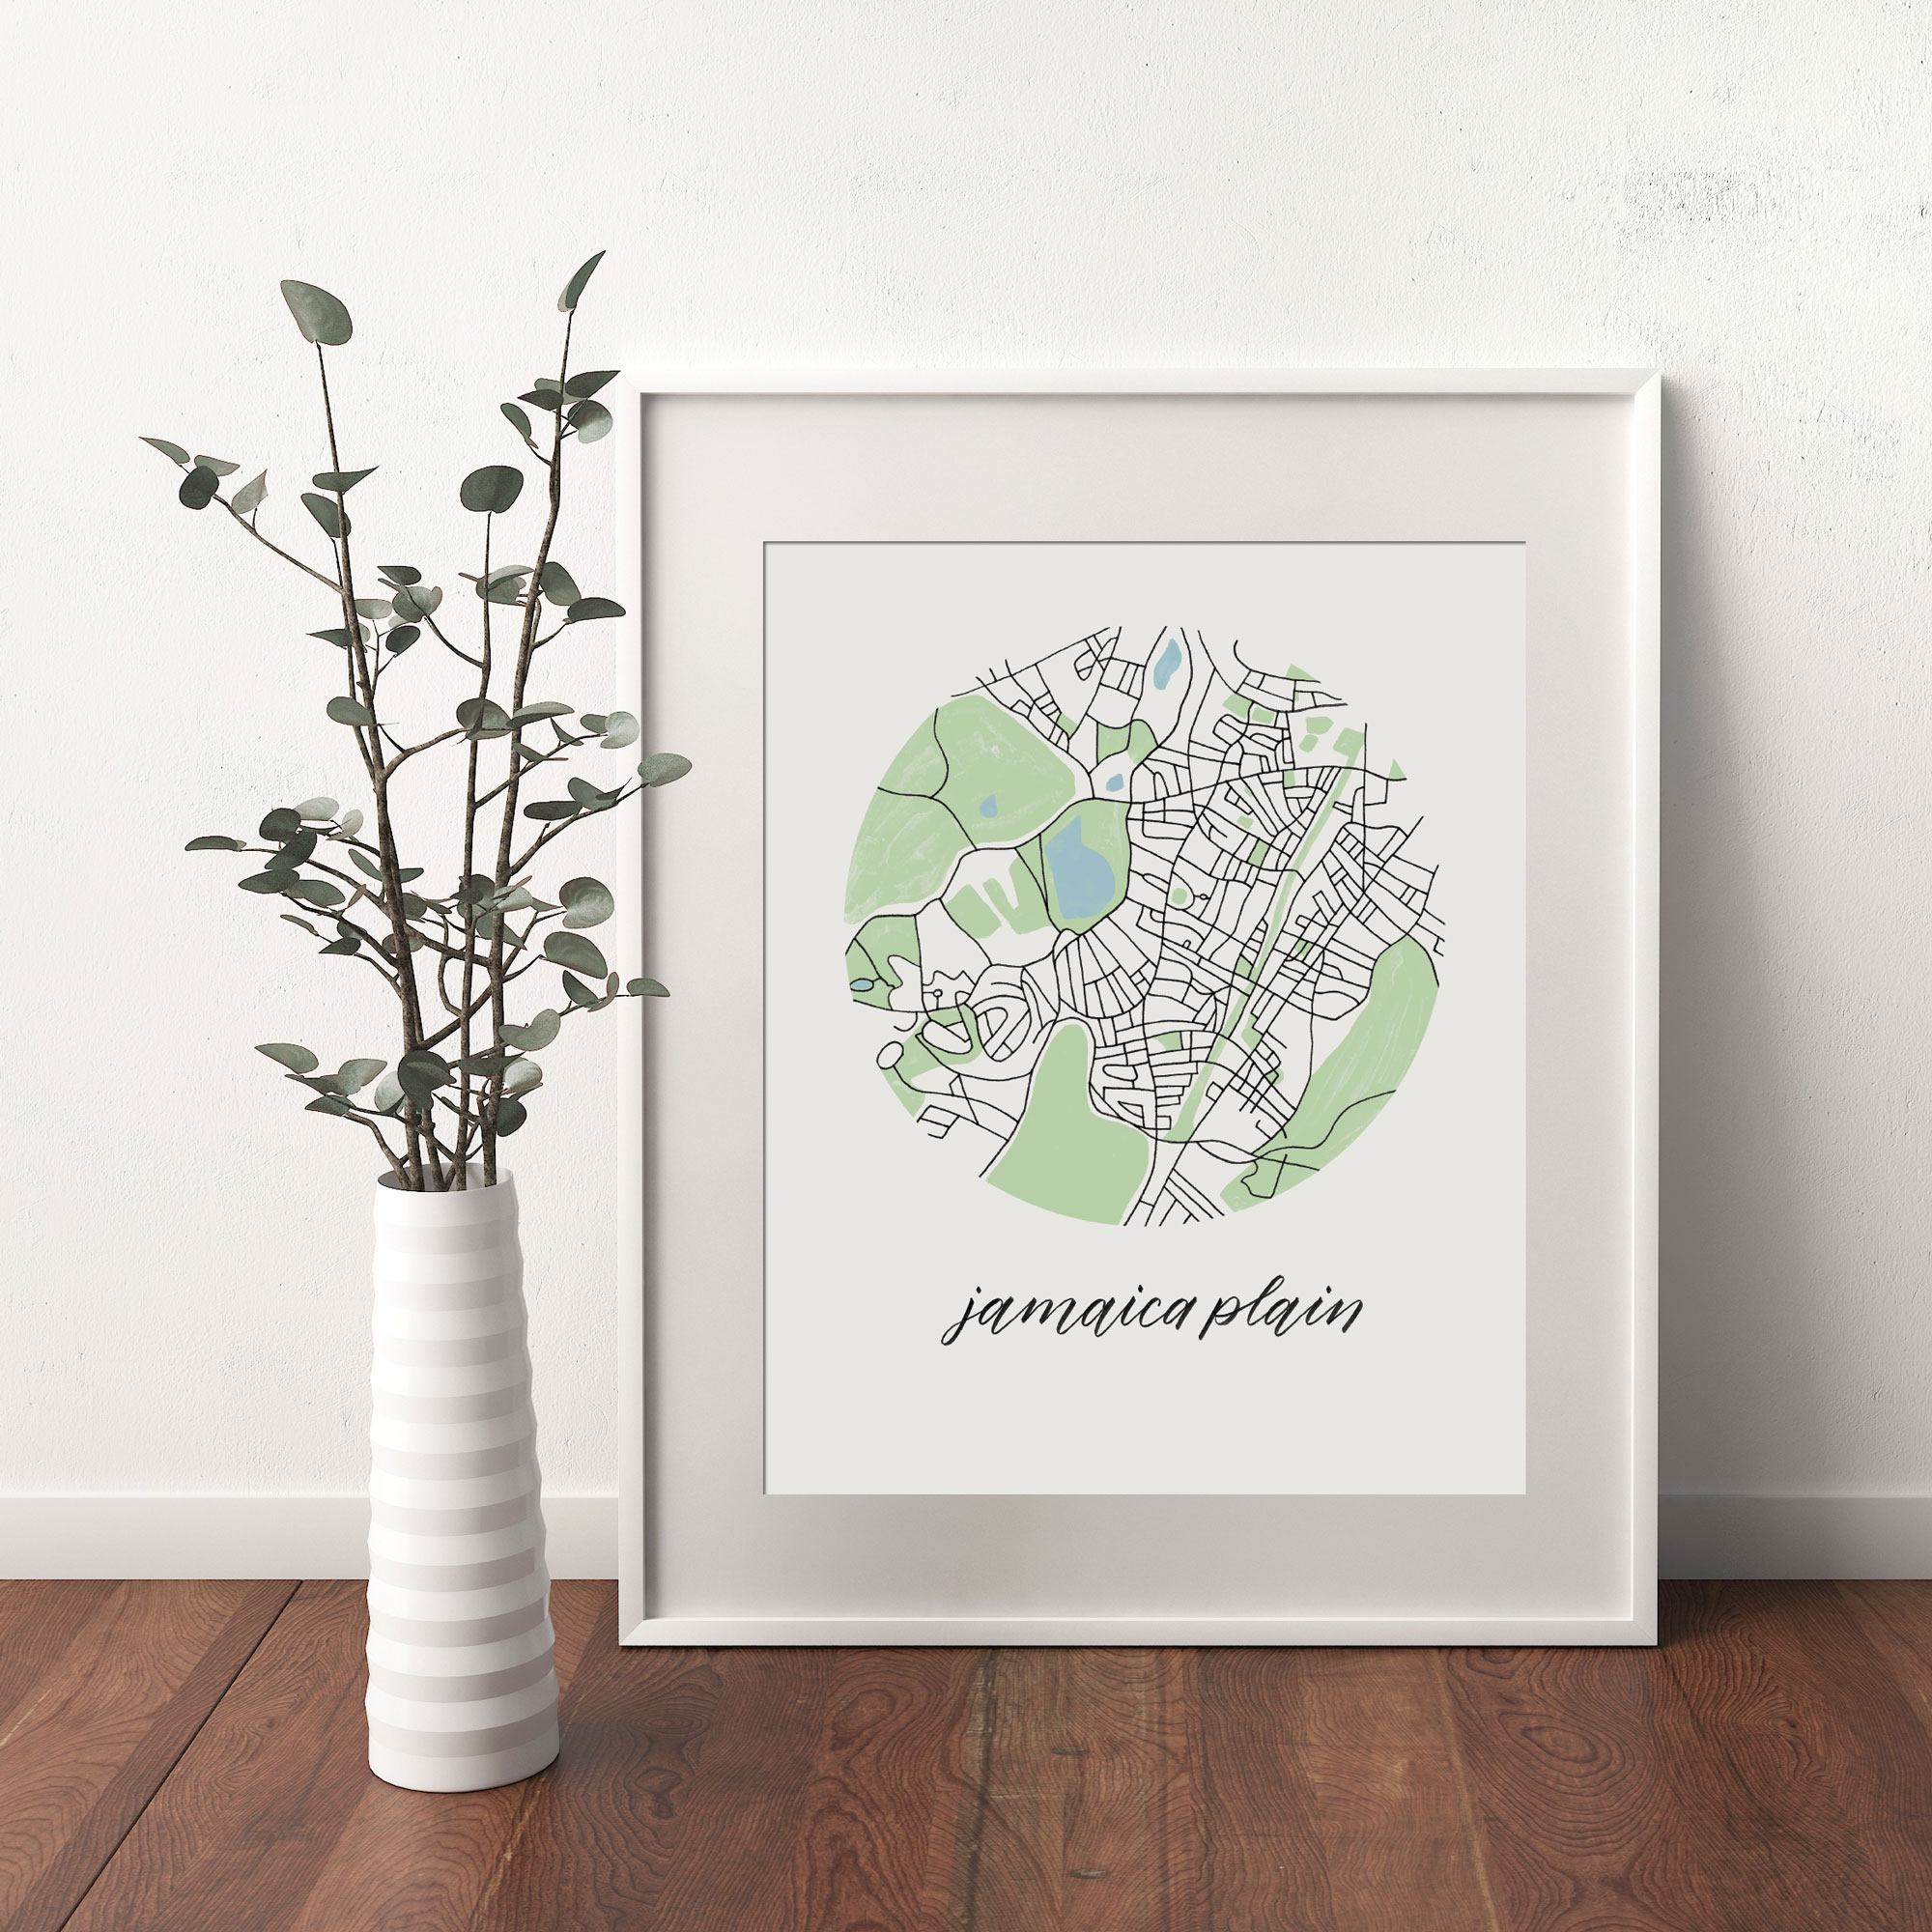 Jamaica Plain, Boston Map print framed and leaning on white wall next to dried leaves in a vase